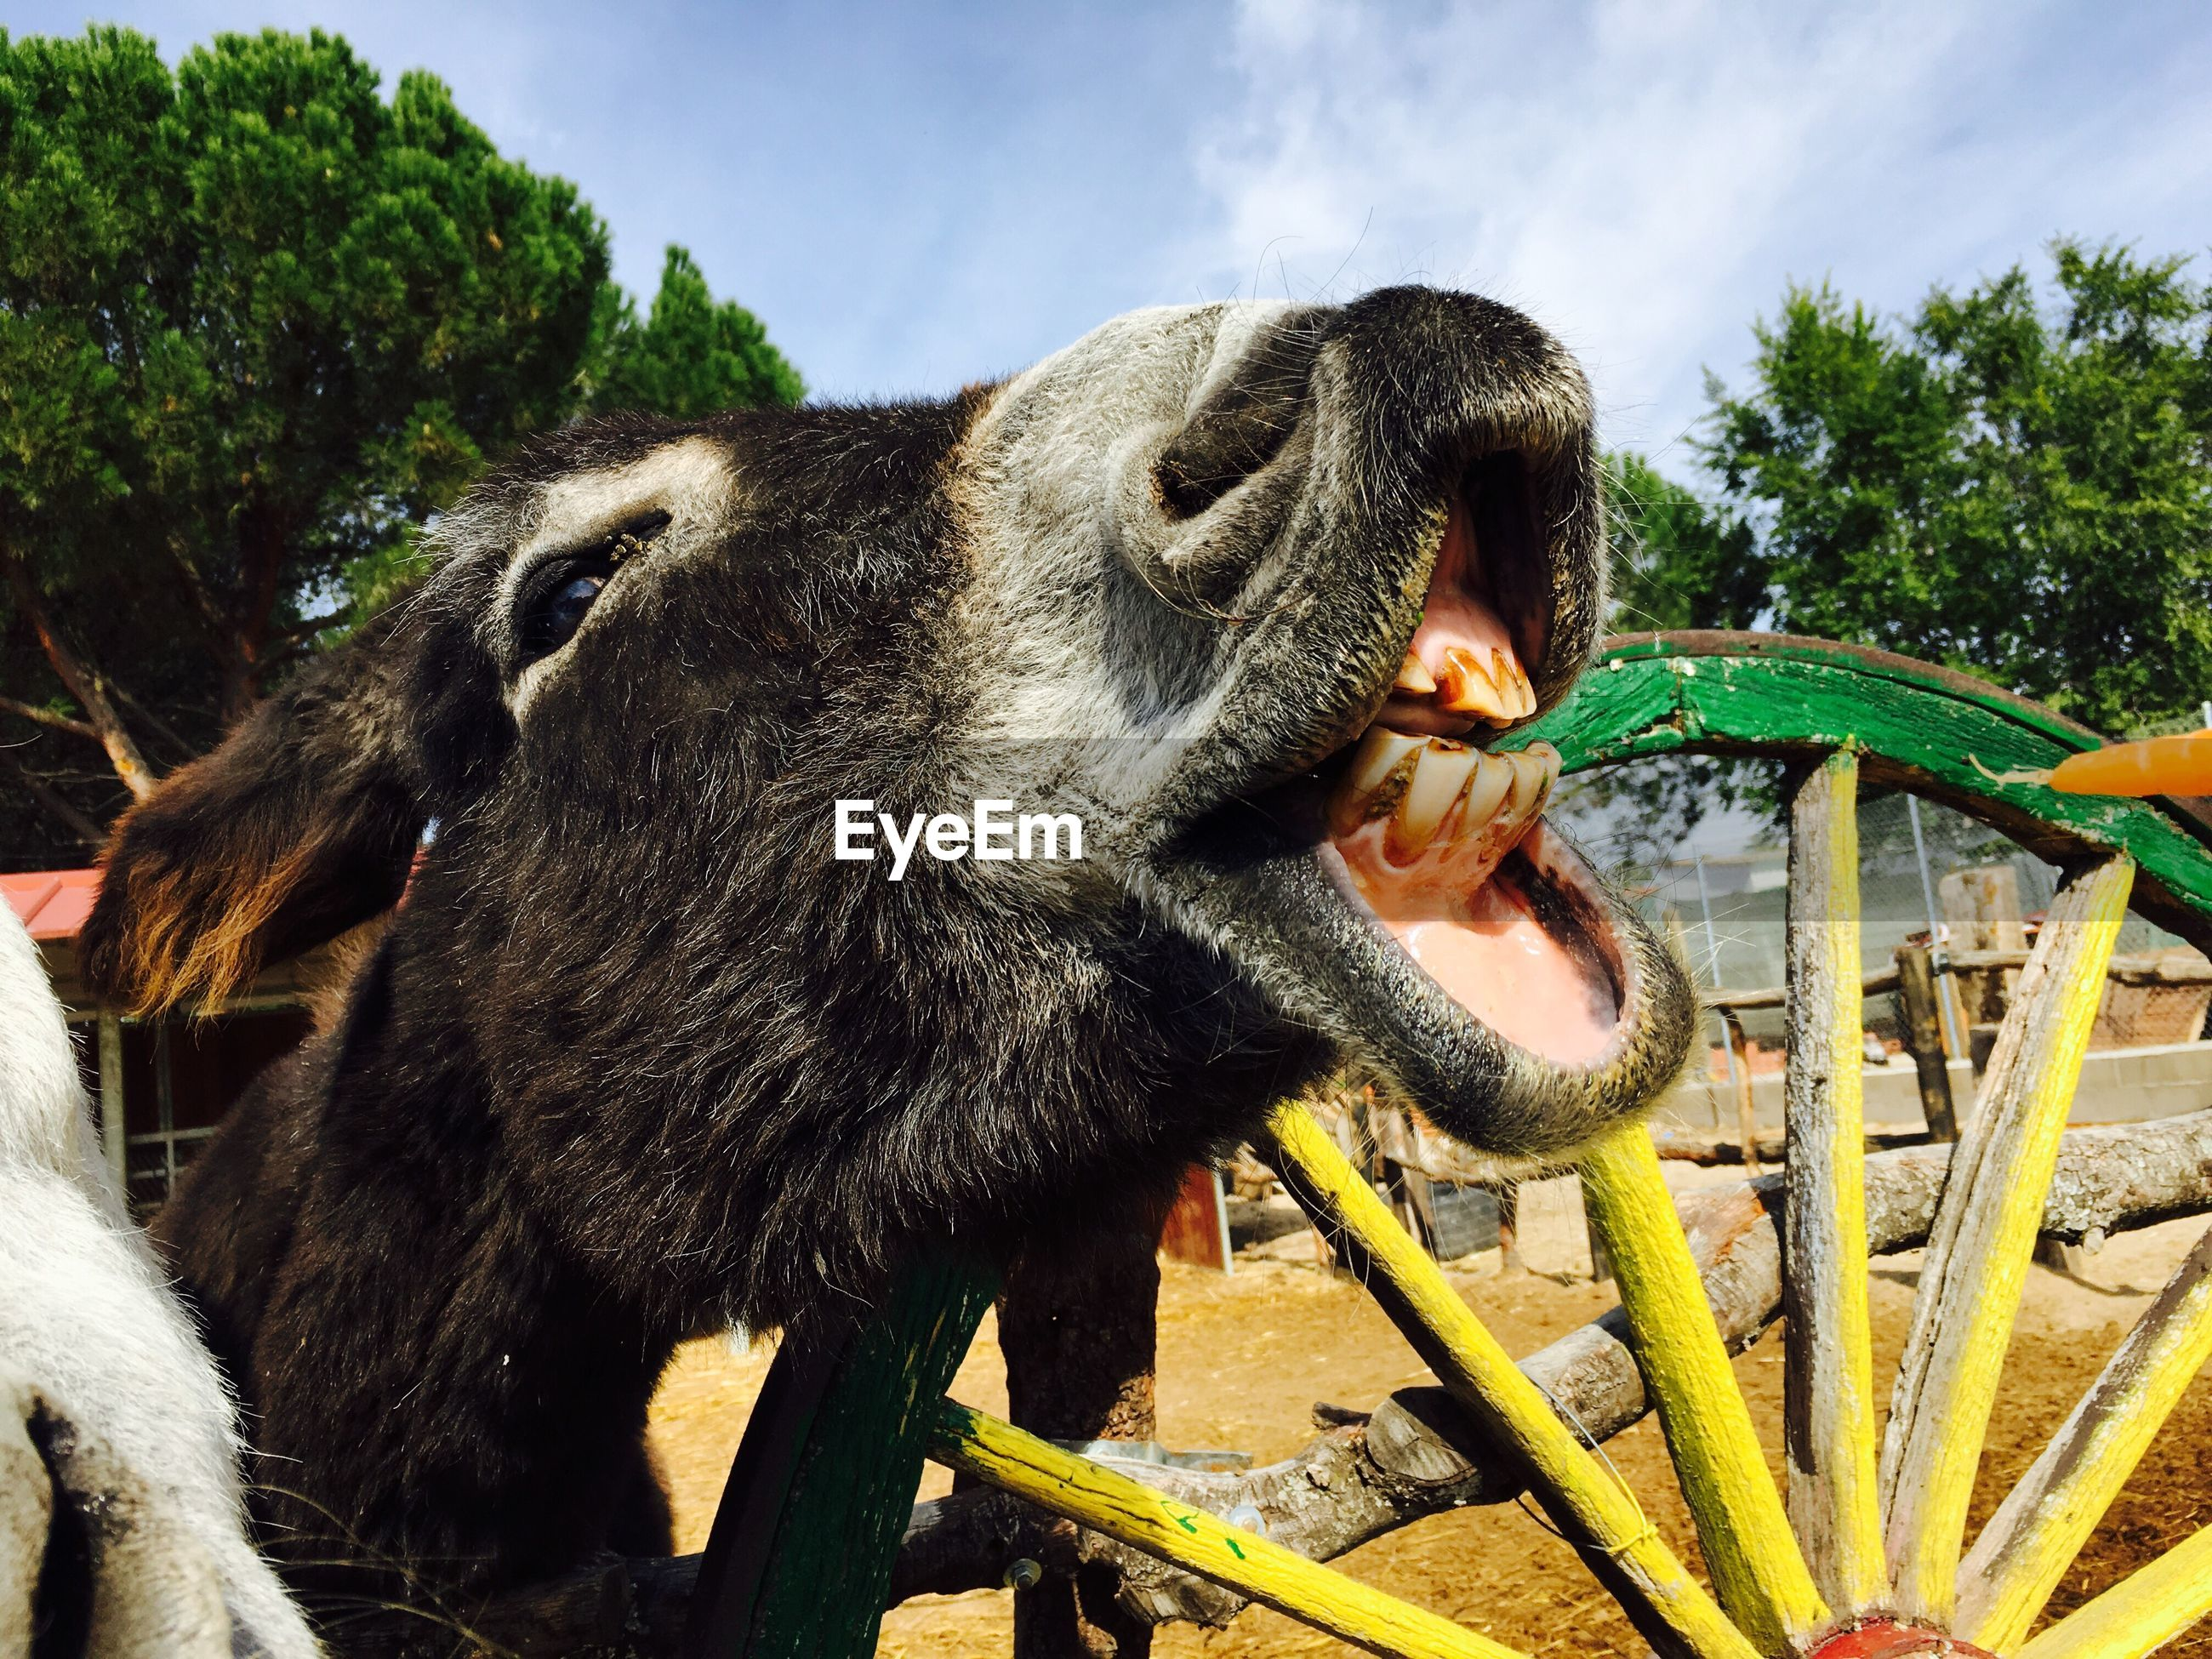 Close-up of donkey laughing by wooden wheel